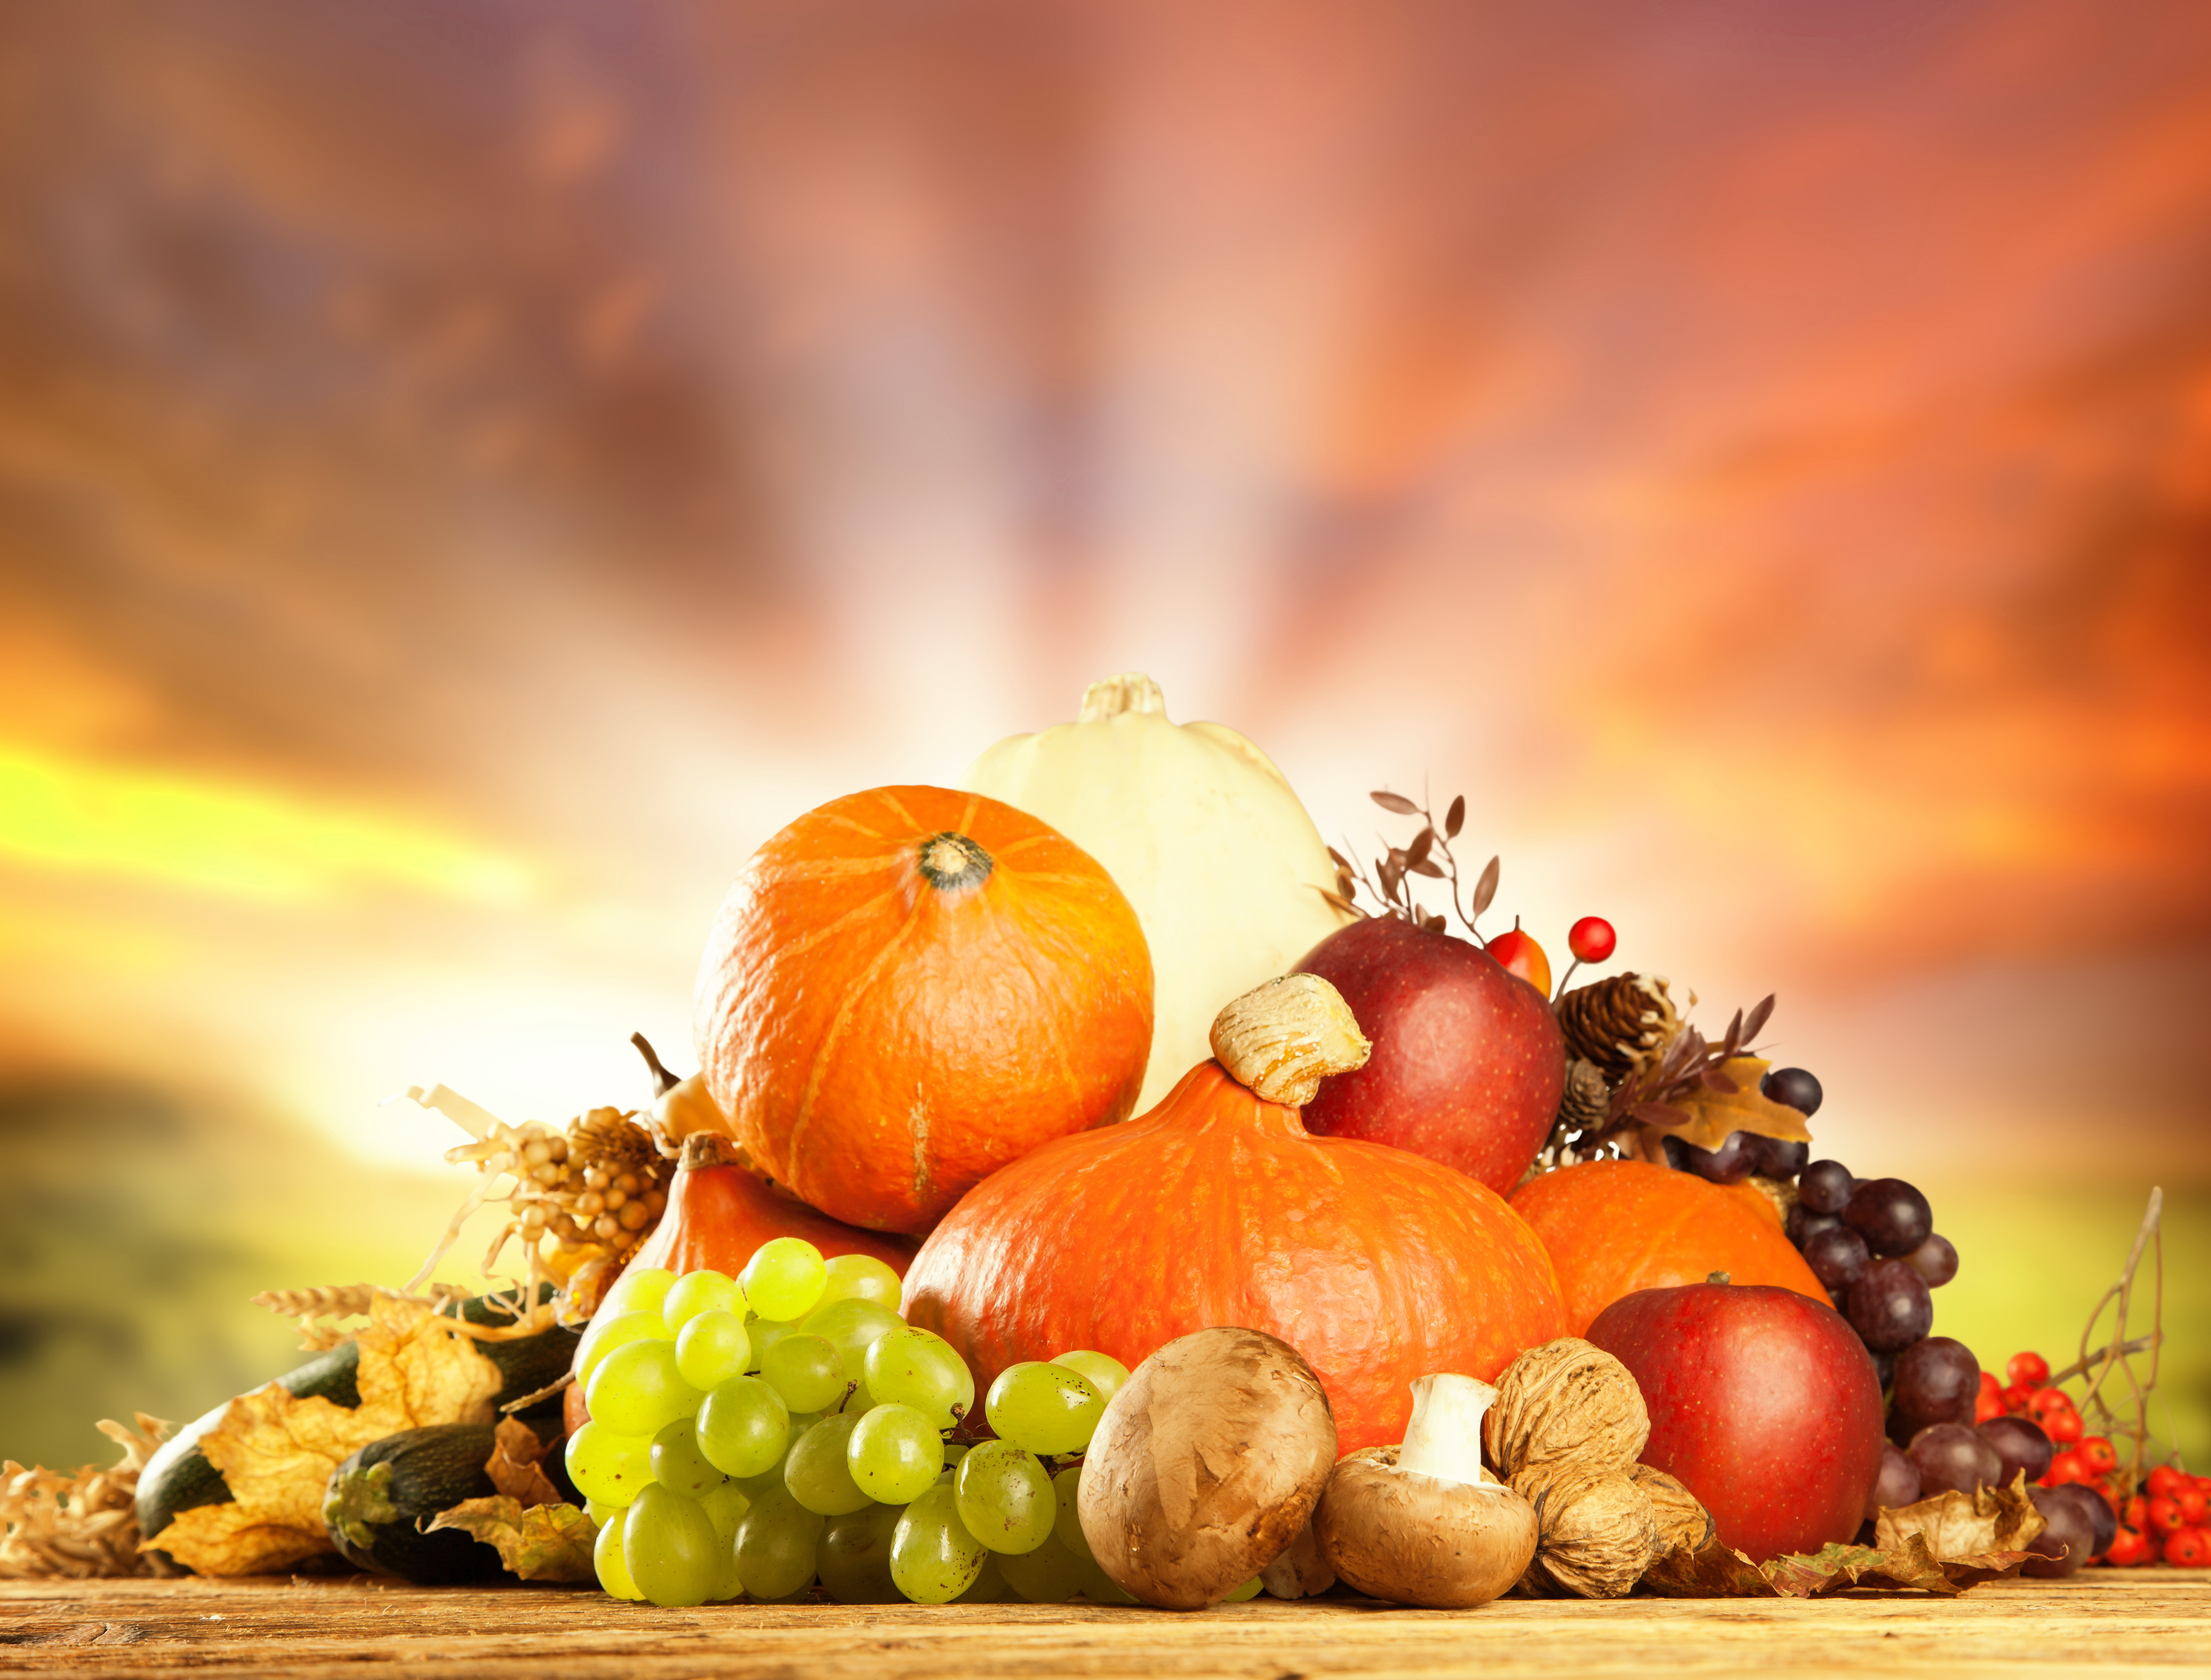 Free Fall Images Desktop Wallpaper Autumn Fruits Background Gallery Yopriceville High